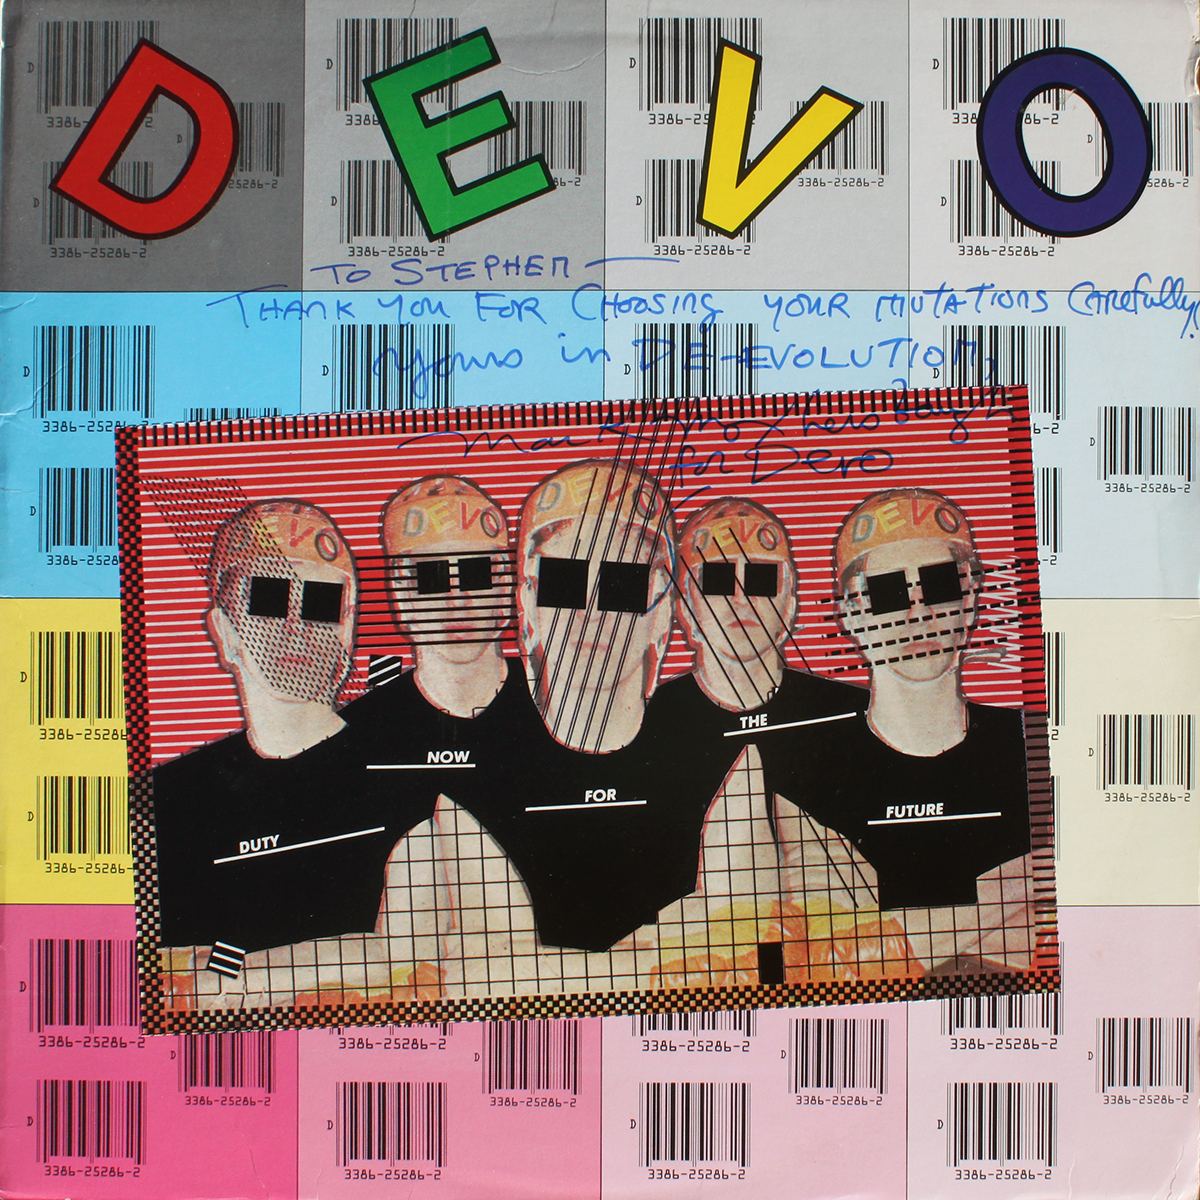 Devo LP - Duty Now For the Future